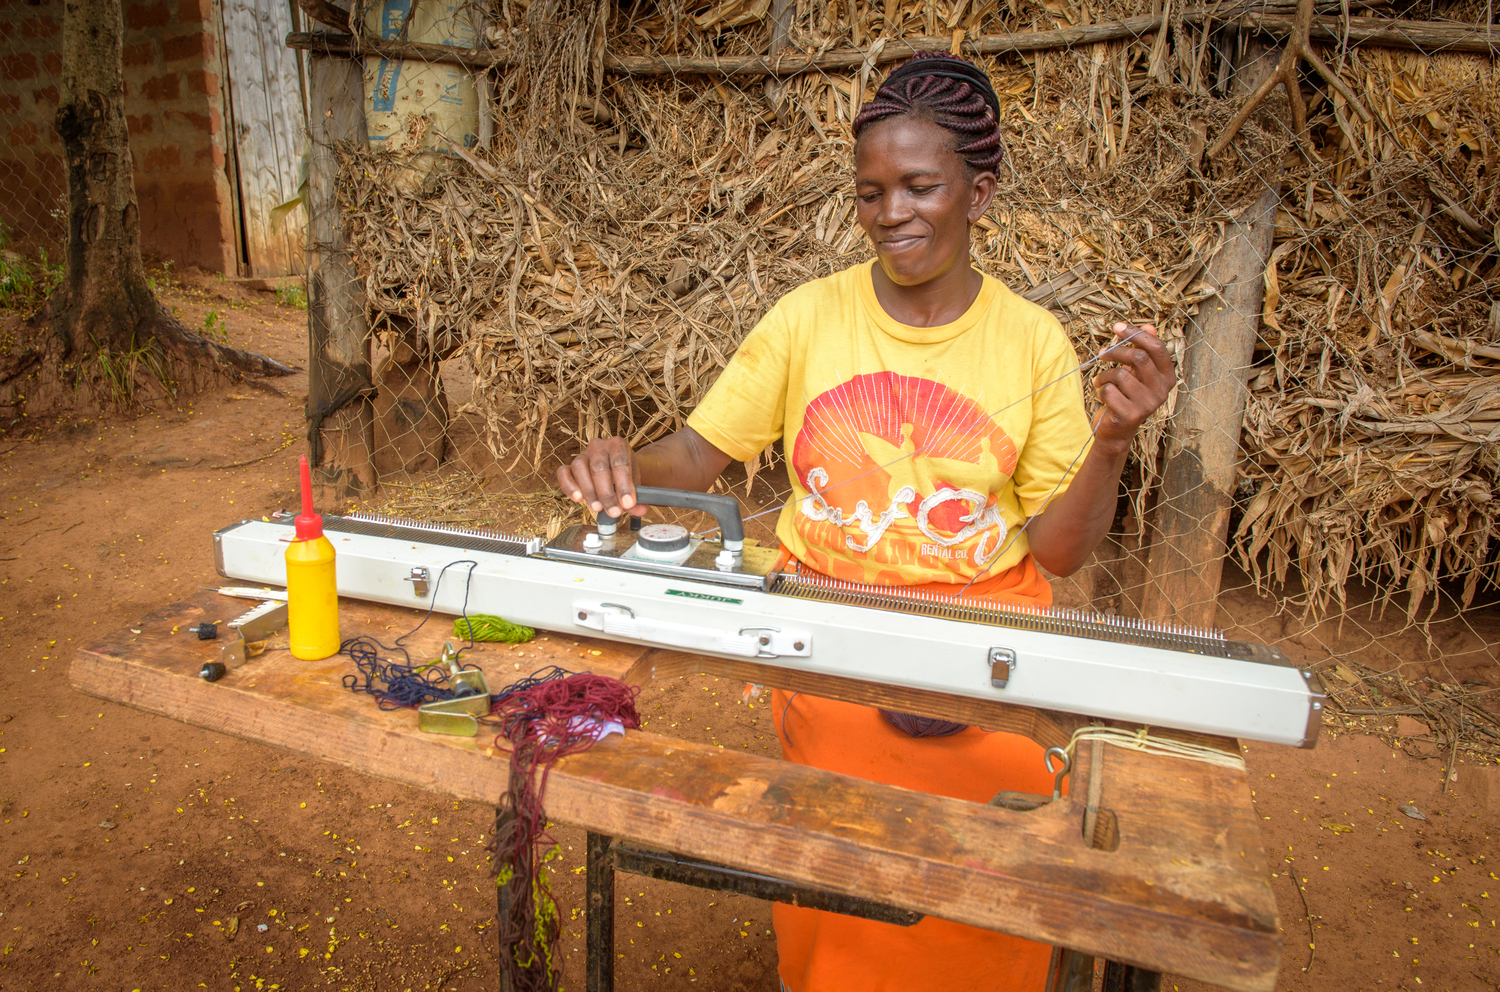 Janet now makes school uniforms on a new World Vision-donated knitting machine. This enables Janet to work from home so she can care for Cynthia.